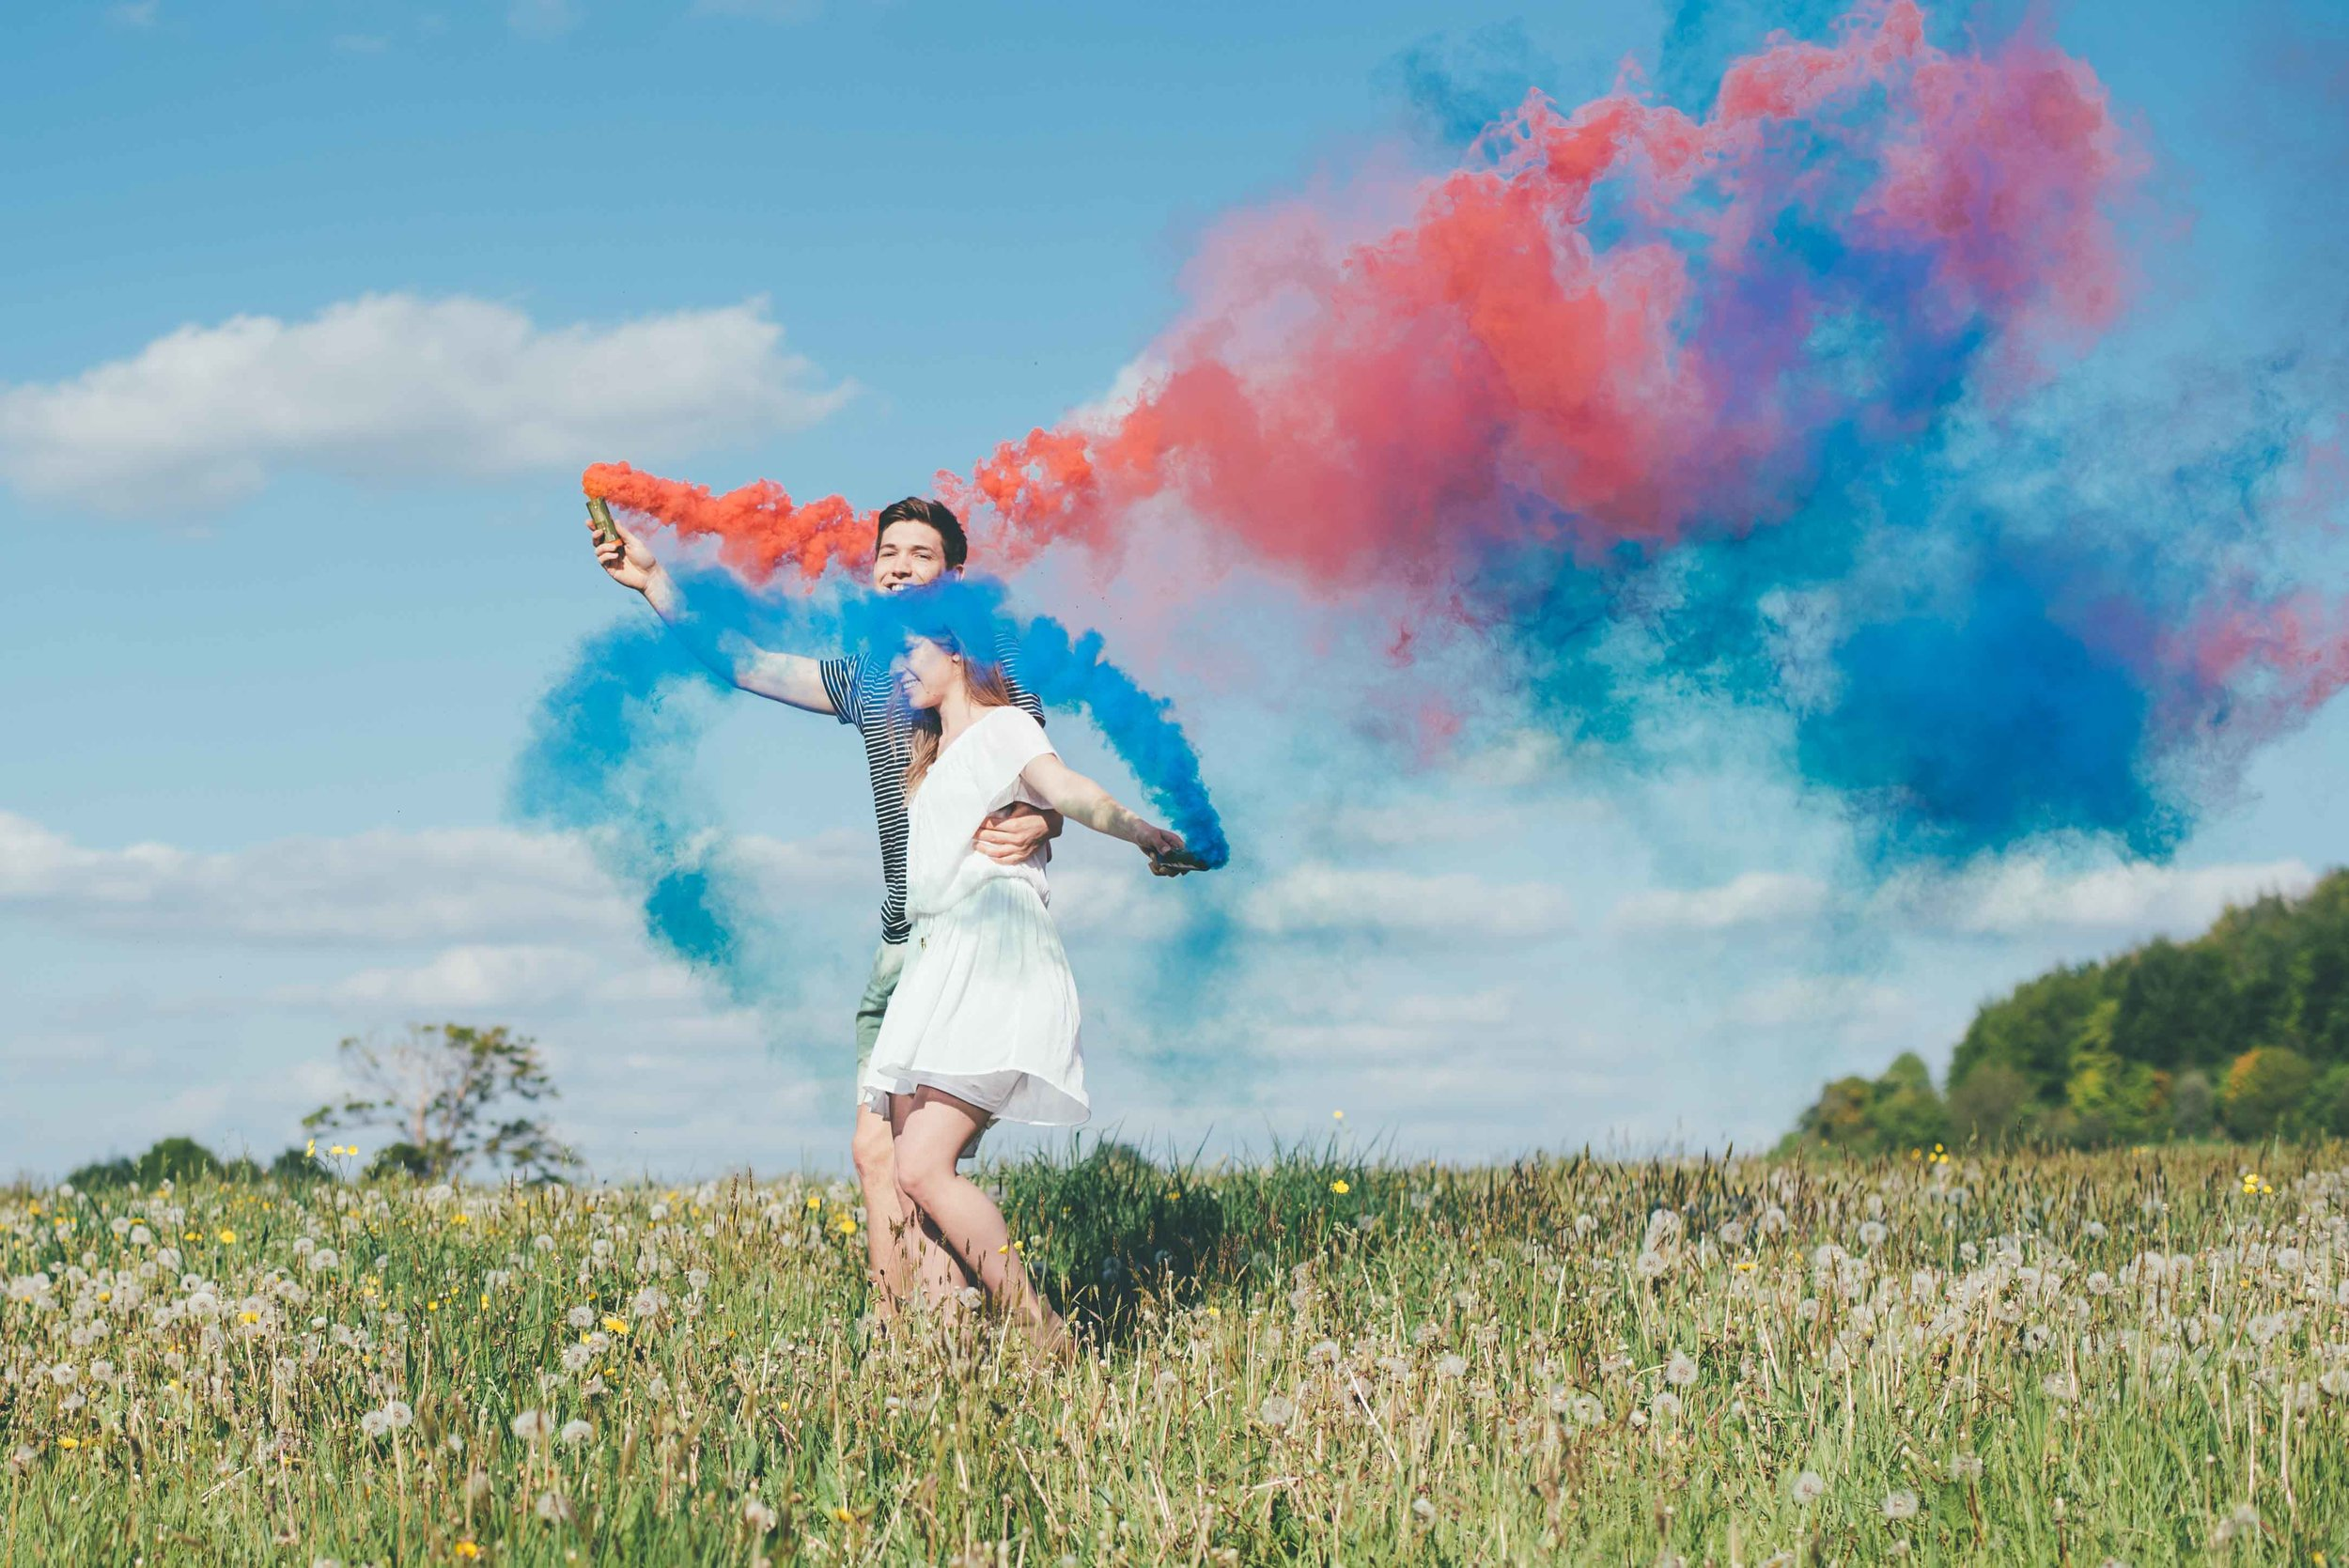 Chloe + Joe - Smoke bomb shoot, Wiltshire